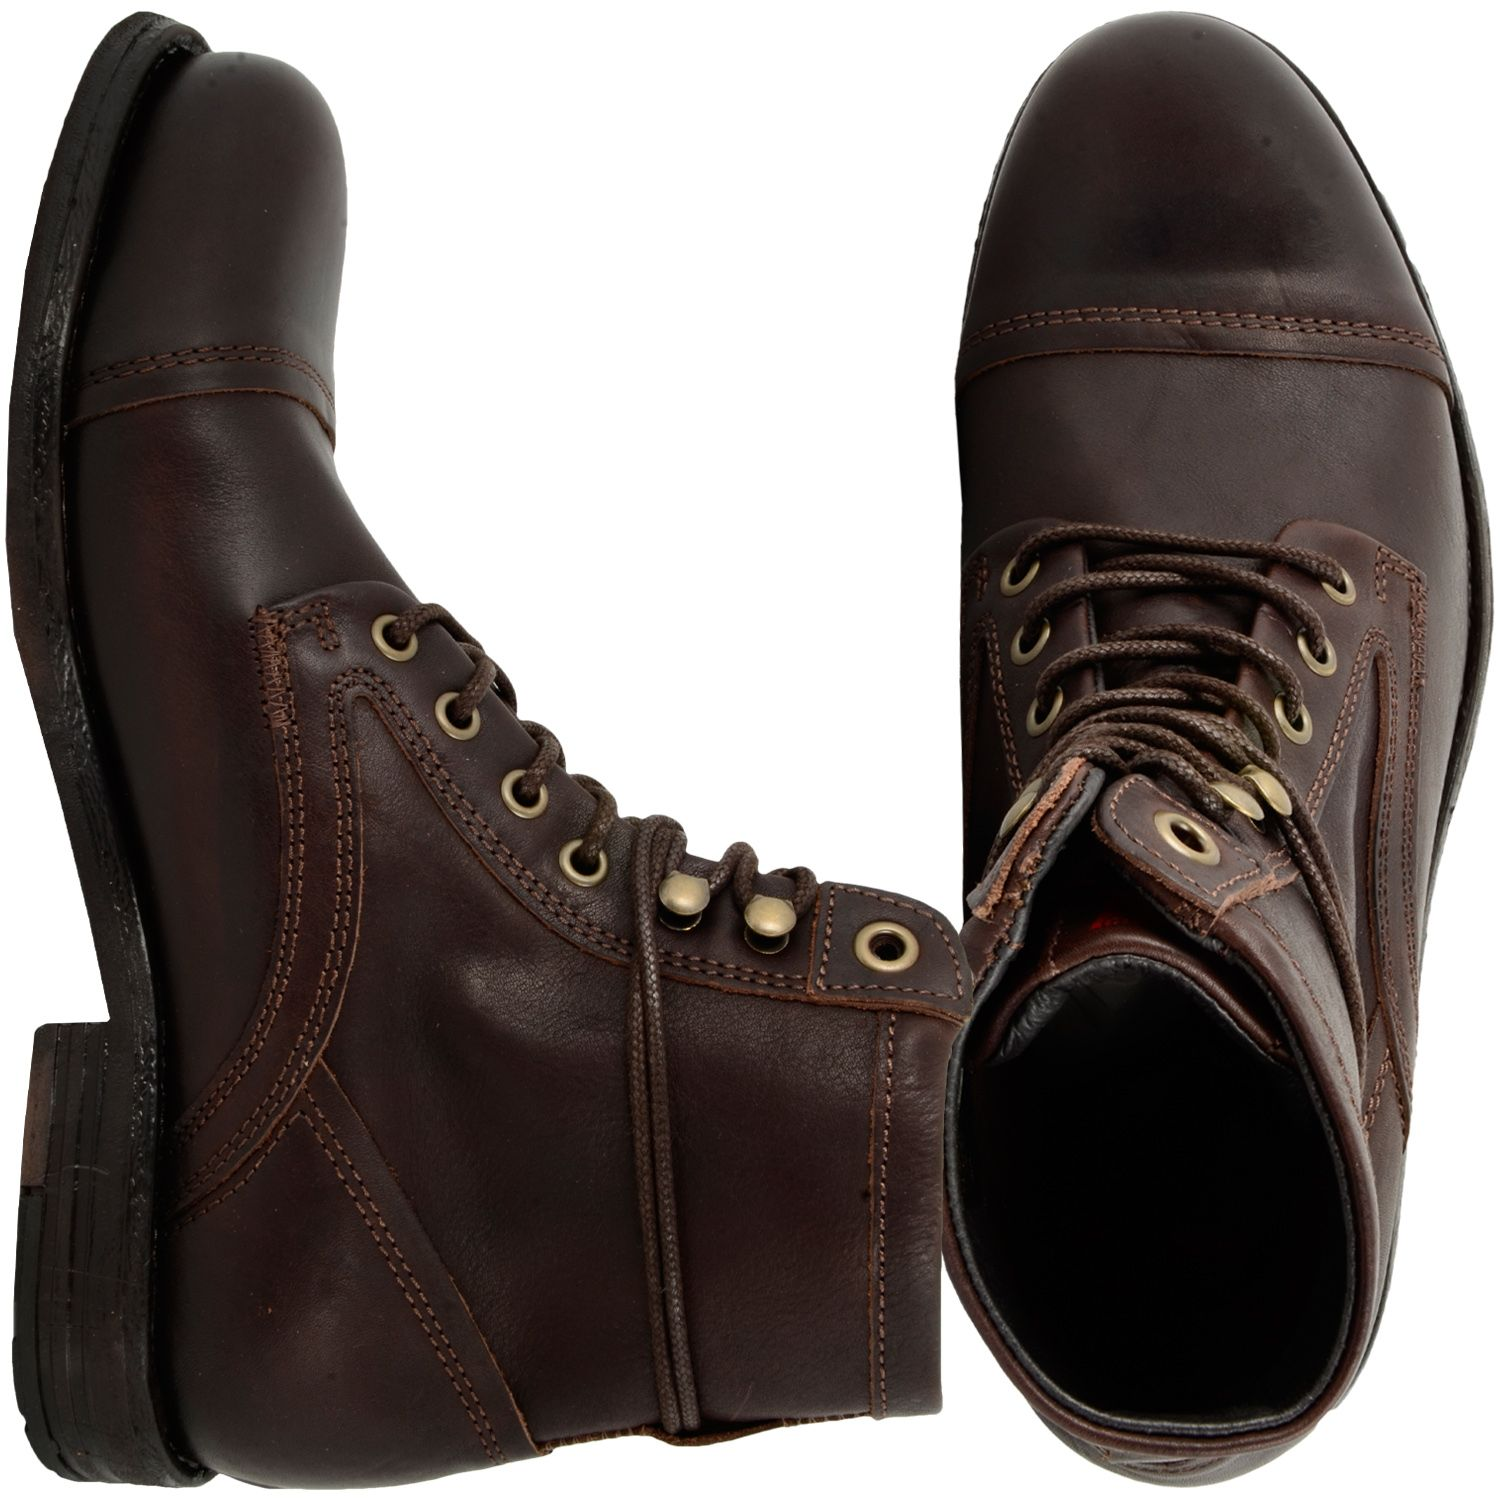 04b3824307 Levis Shoe Arizona Lace Up Men Boot dark brown | SE Super Style ...